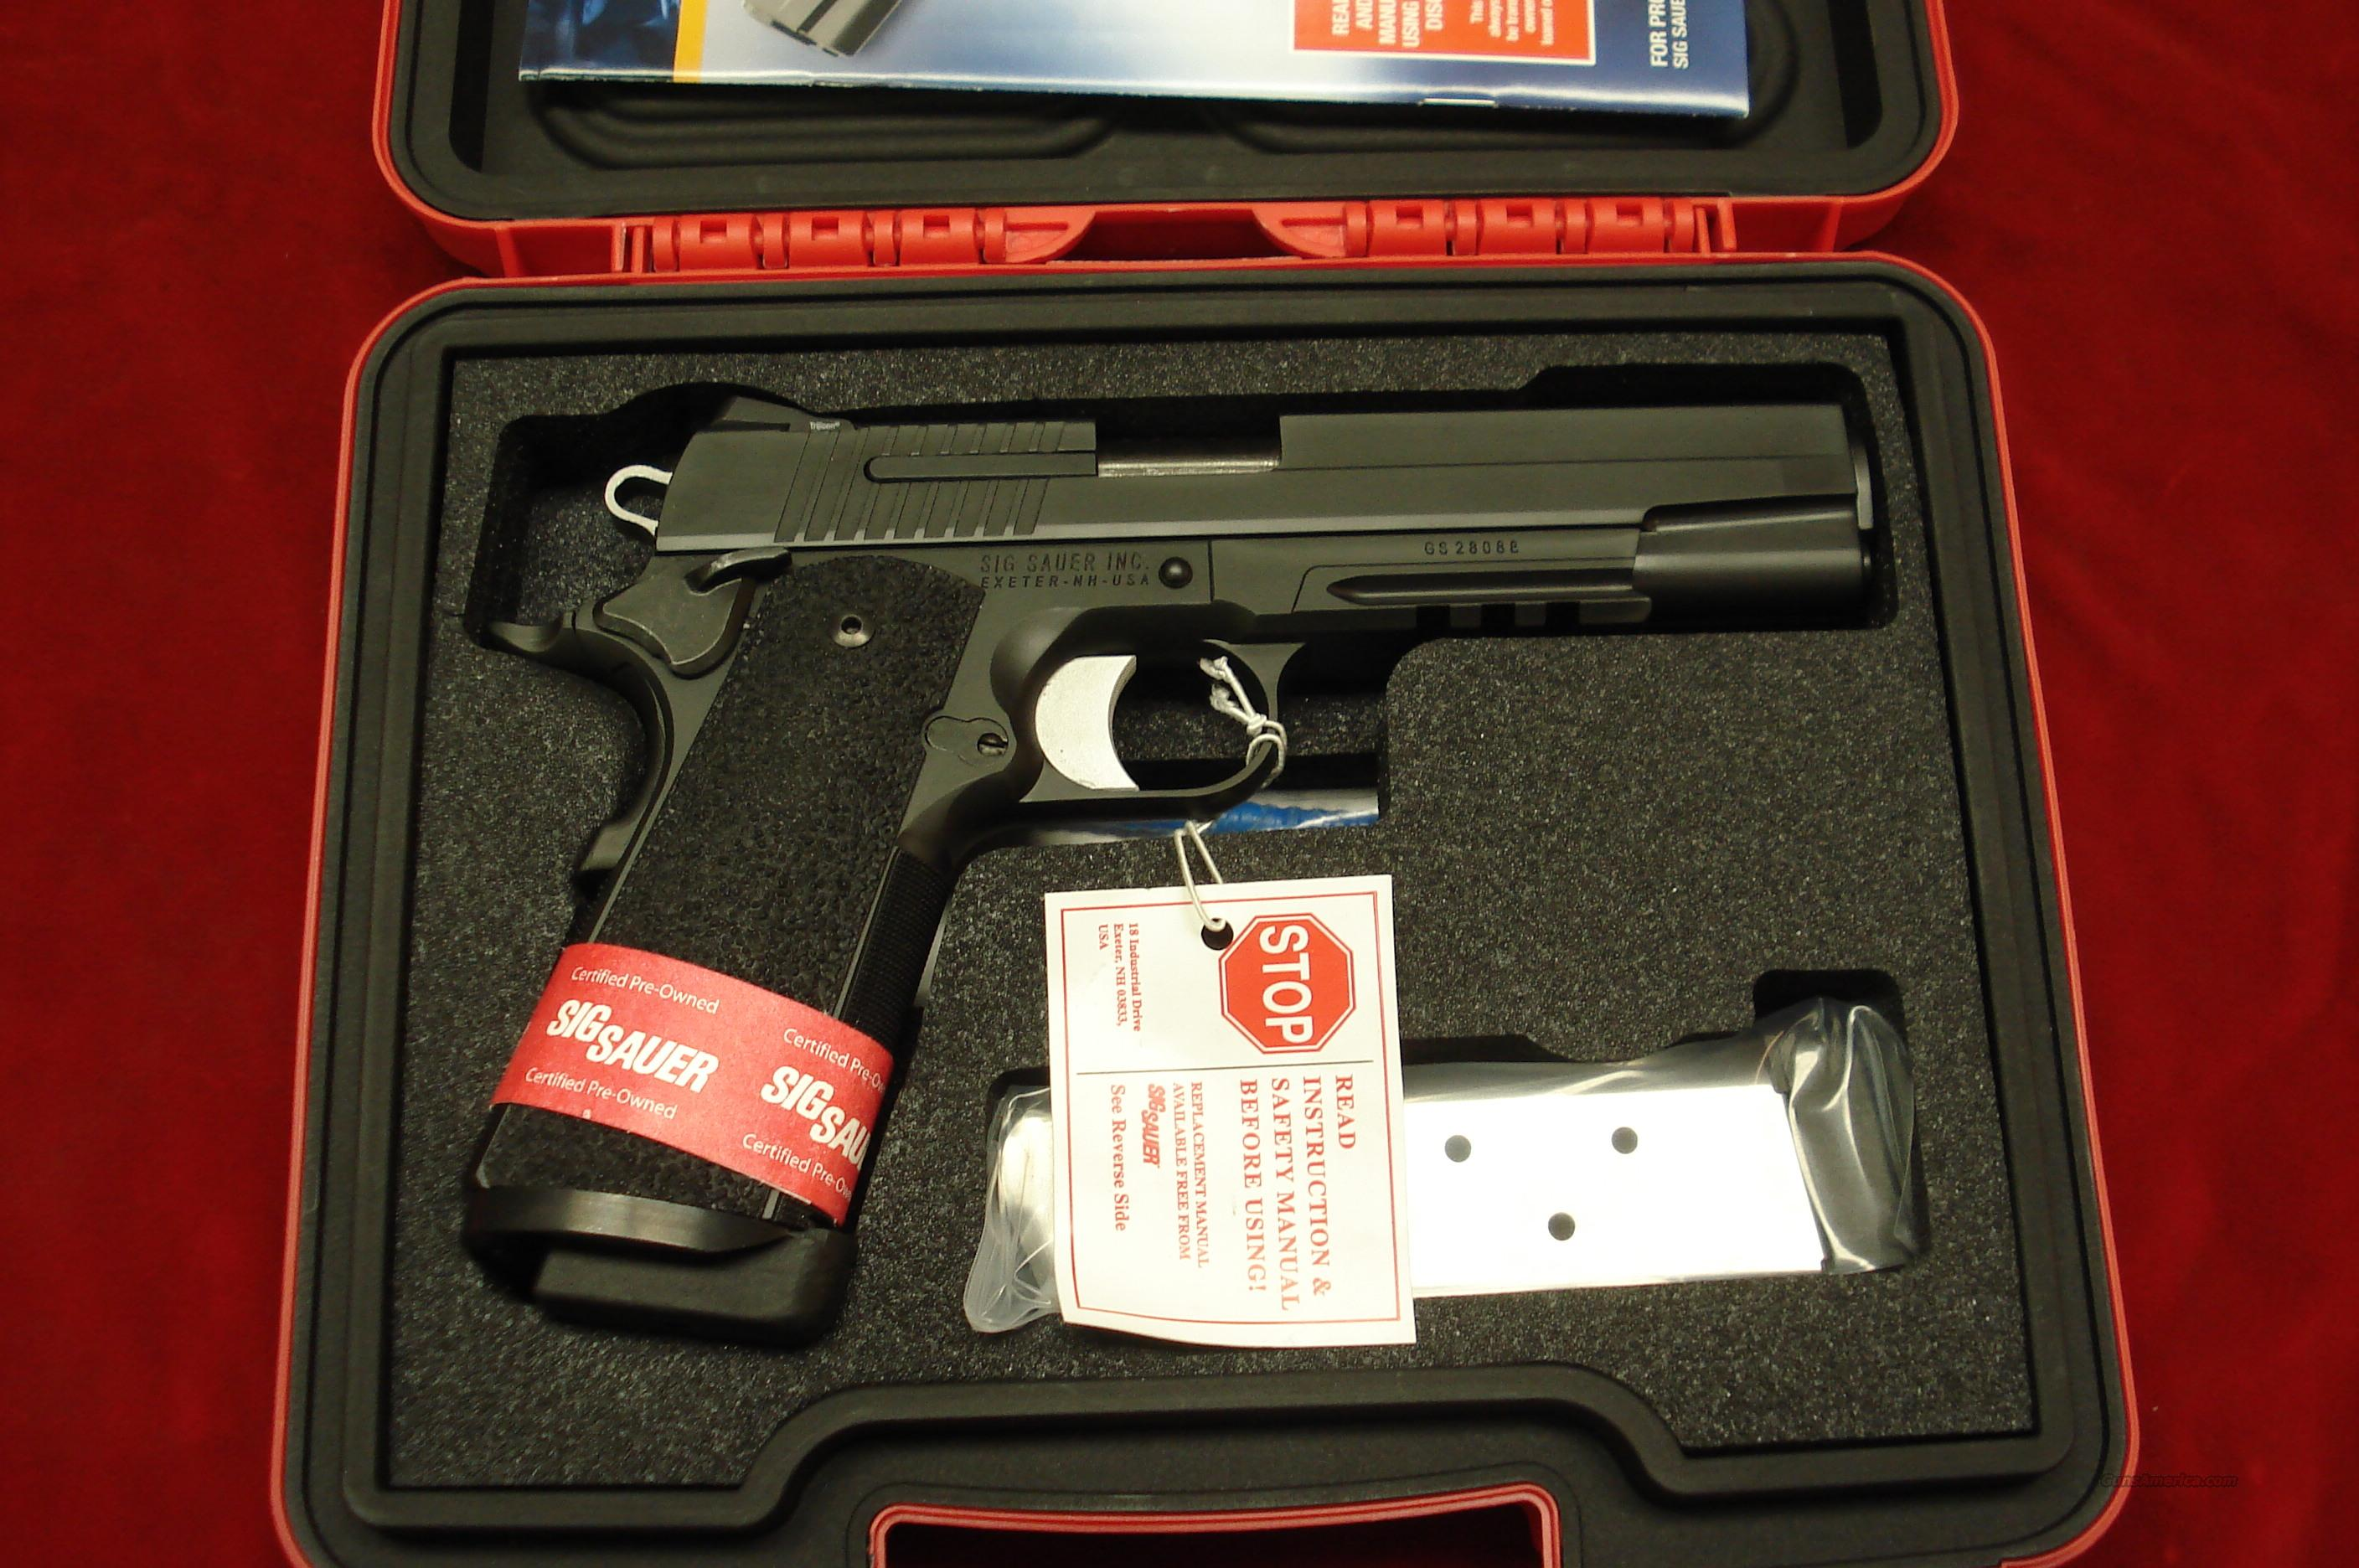 SIG SAUER 1911 WITH TAC RAIL AND NIGHT SIGHTS CERTIFIED PREOWNED    Guns > Pistols > Sig - Sauer/Sigarms Pistols > 1911